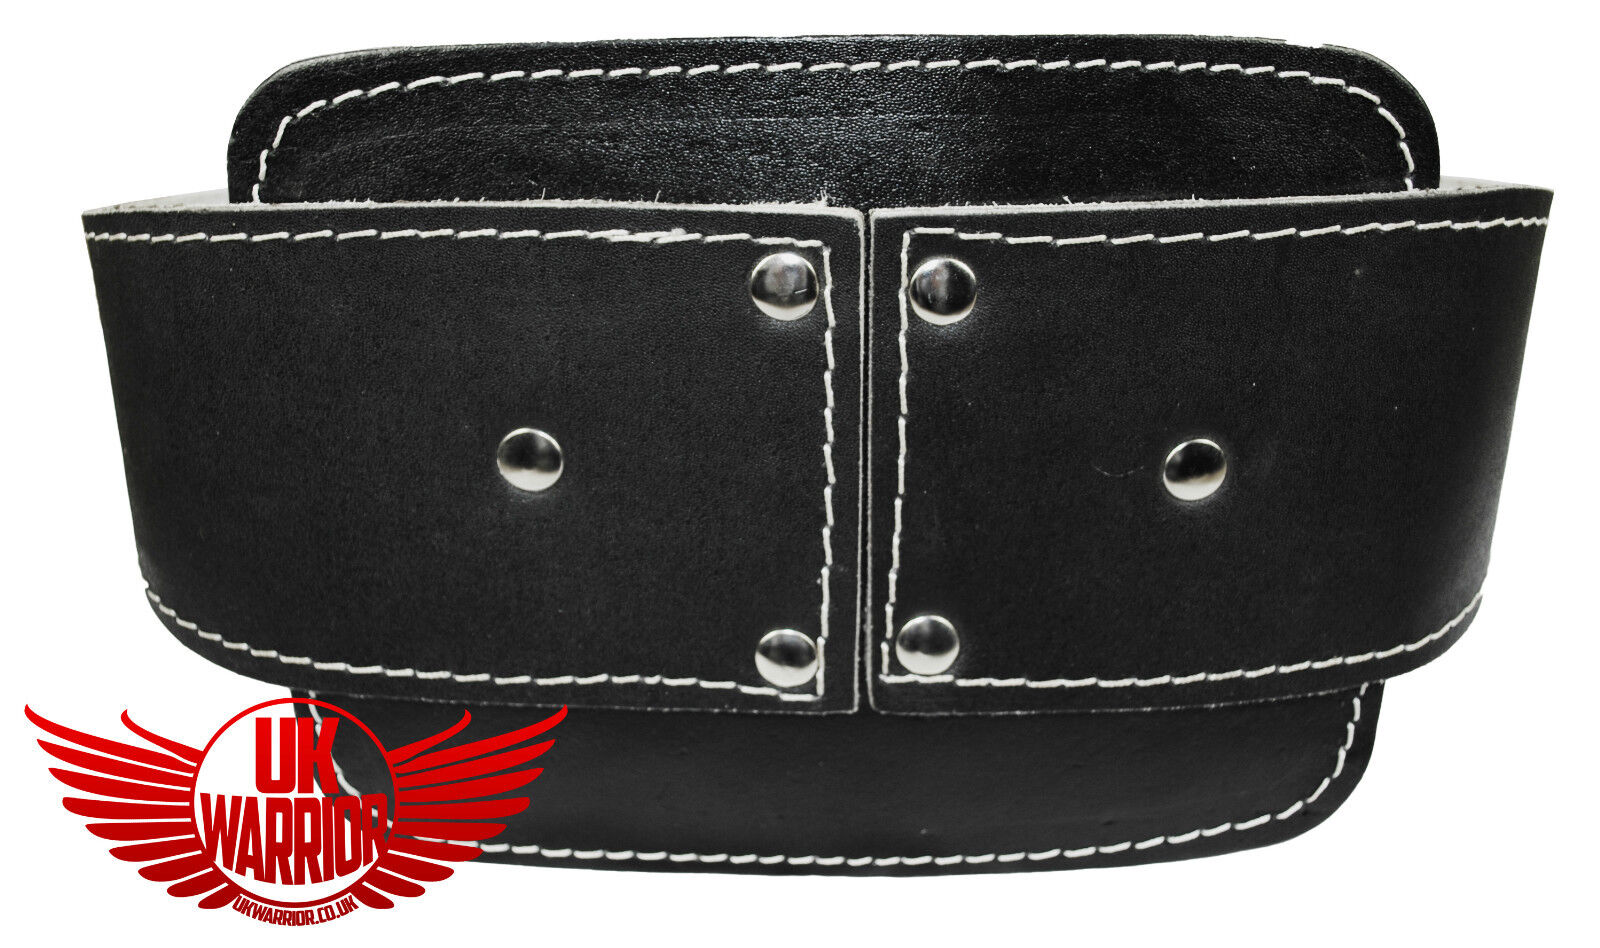 uk warrior 174 leather dipping belt building weight dip